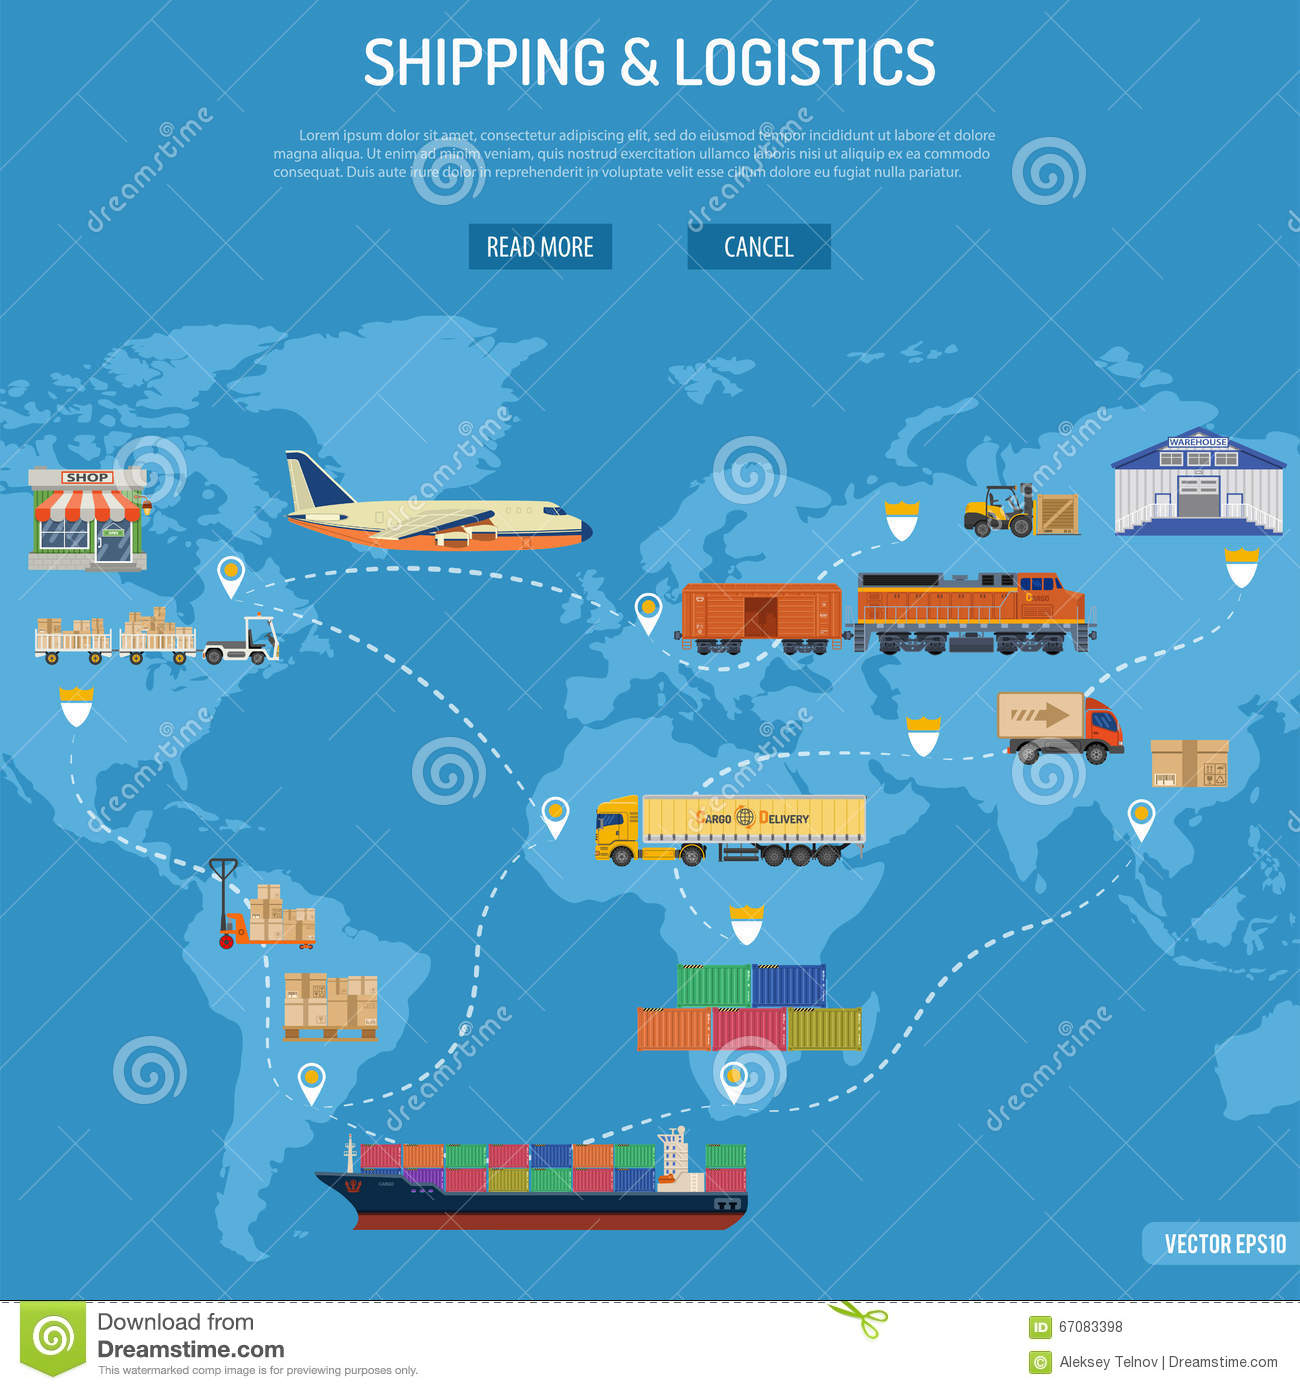 maritime logistics What does maritime logistics mean today industry experts, dong-wook song &  photis panayides, examine the latest developments shaping.